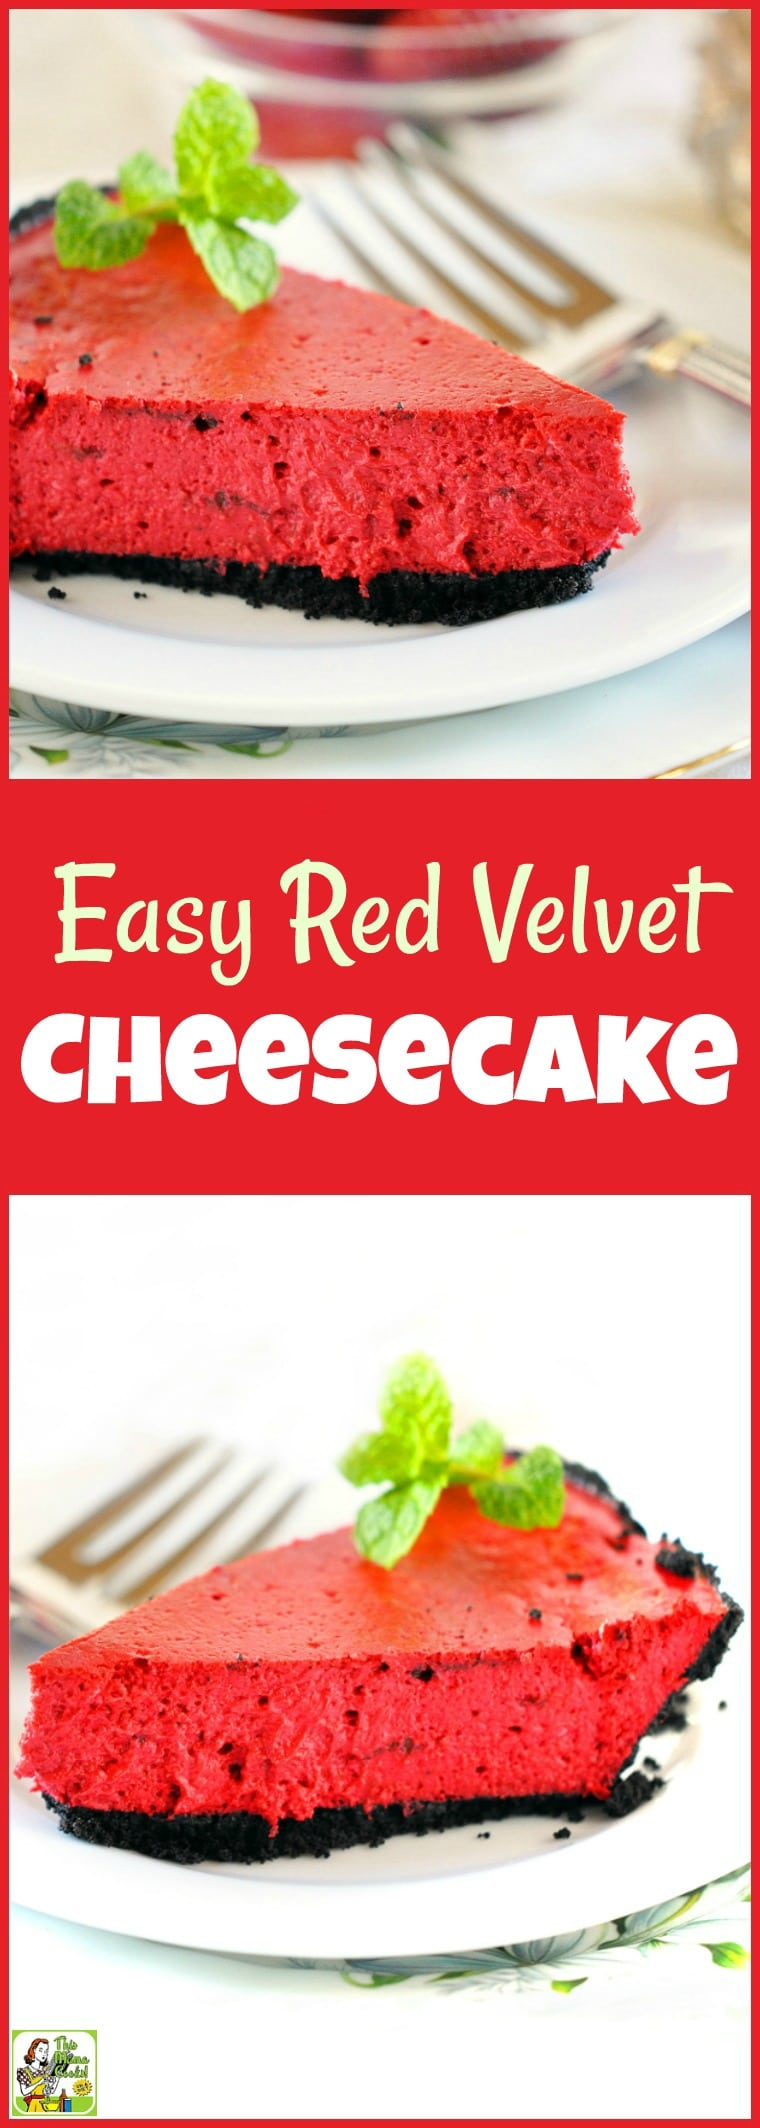 Looking for an Easy Red Velvet Cheesecake recipe? Make this simple and healthy red velvet dessert recipe for Valentine's Day, Christmas, Fourth of July, Memorial Day, Labor Day. Gluten free and dairy free options. Diabetic friendly. #recipe #easy #recipeoftheday #healthyrecipes #glutenfree #easyrecipes #desserts #dessertrecipes #dessertideas #baking #bakingrecipes #easybaking #cake #cakerecipes #cheesecake #cheesecakerecipes #redvelvet #redvelvetcake #diabeticrecipes #diabeticlifestyle #diabetic #diabeticliving